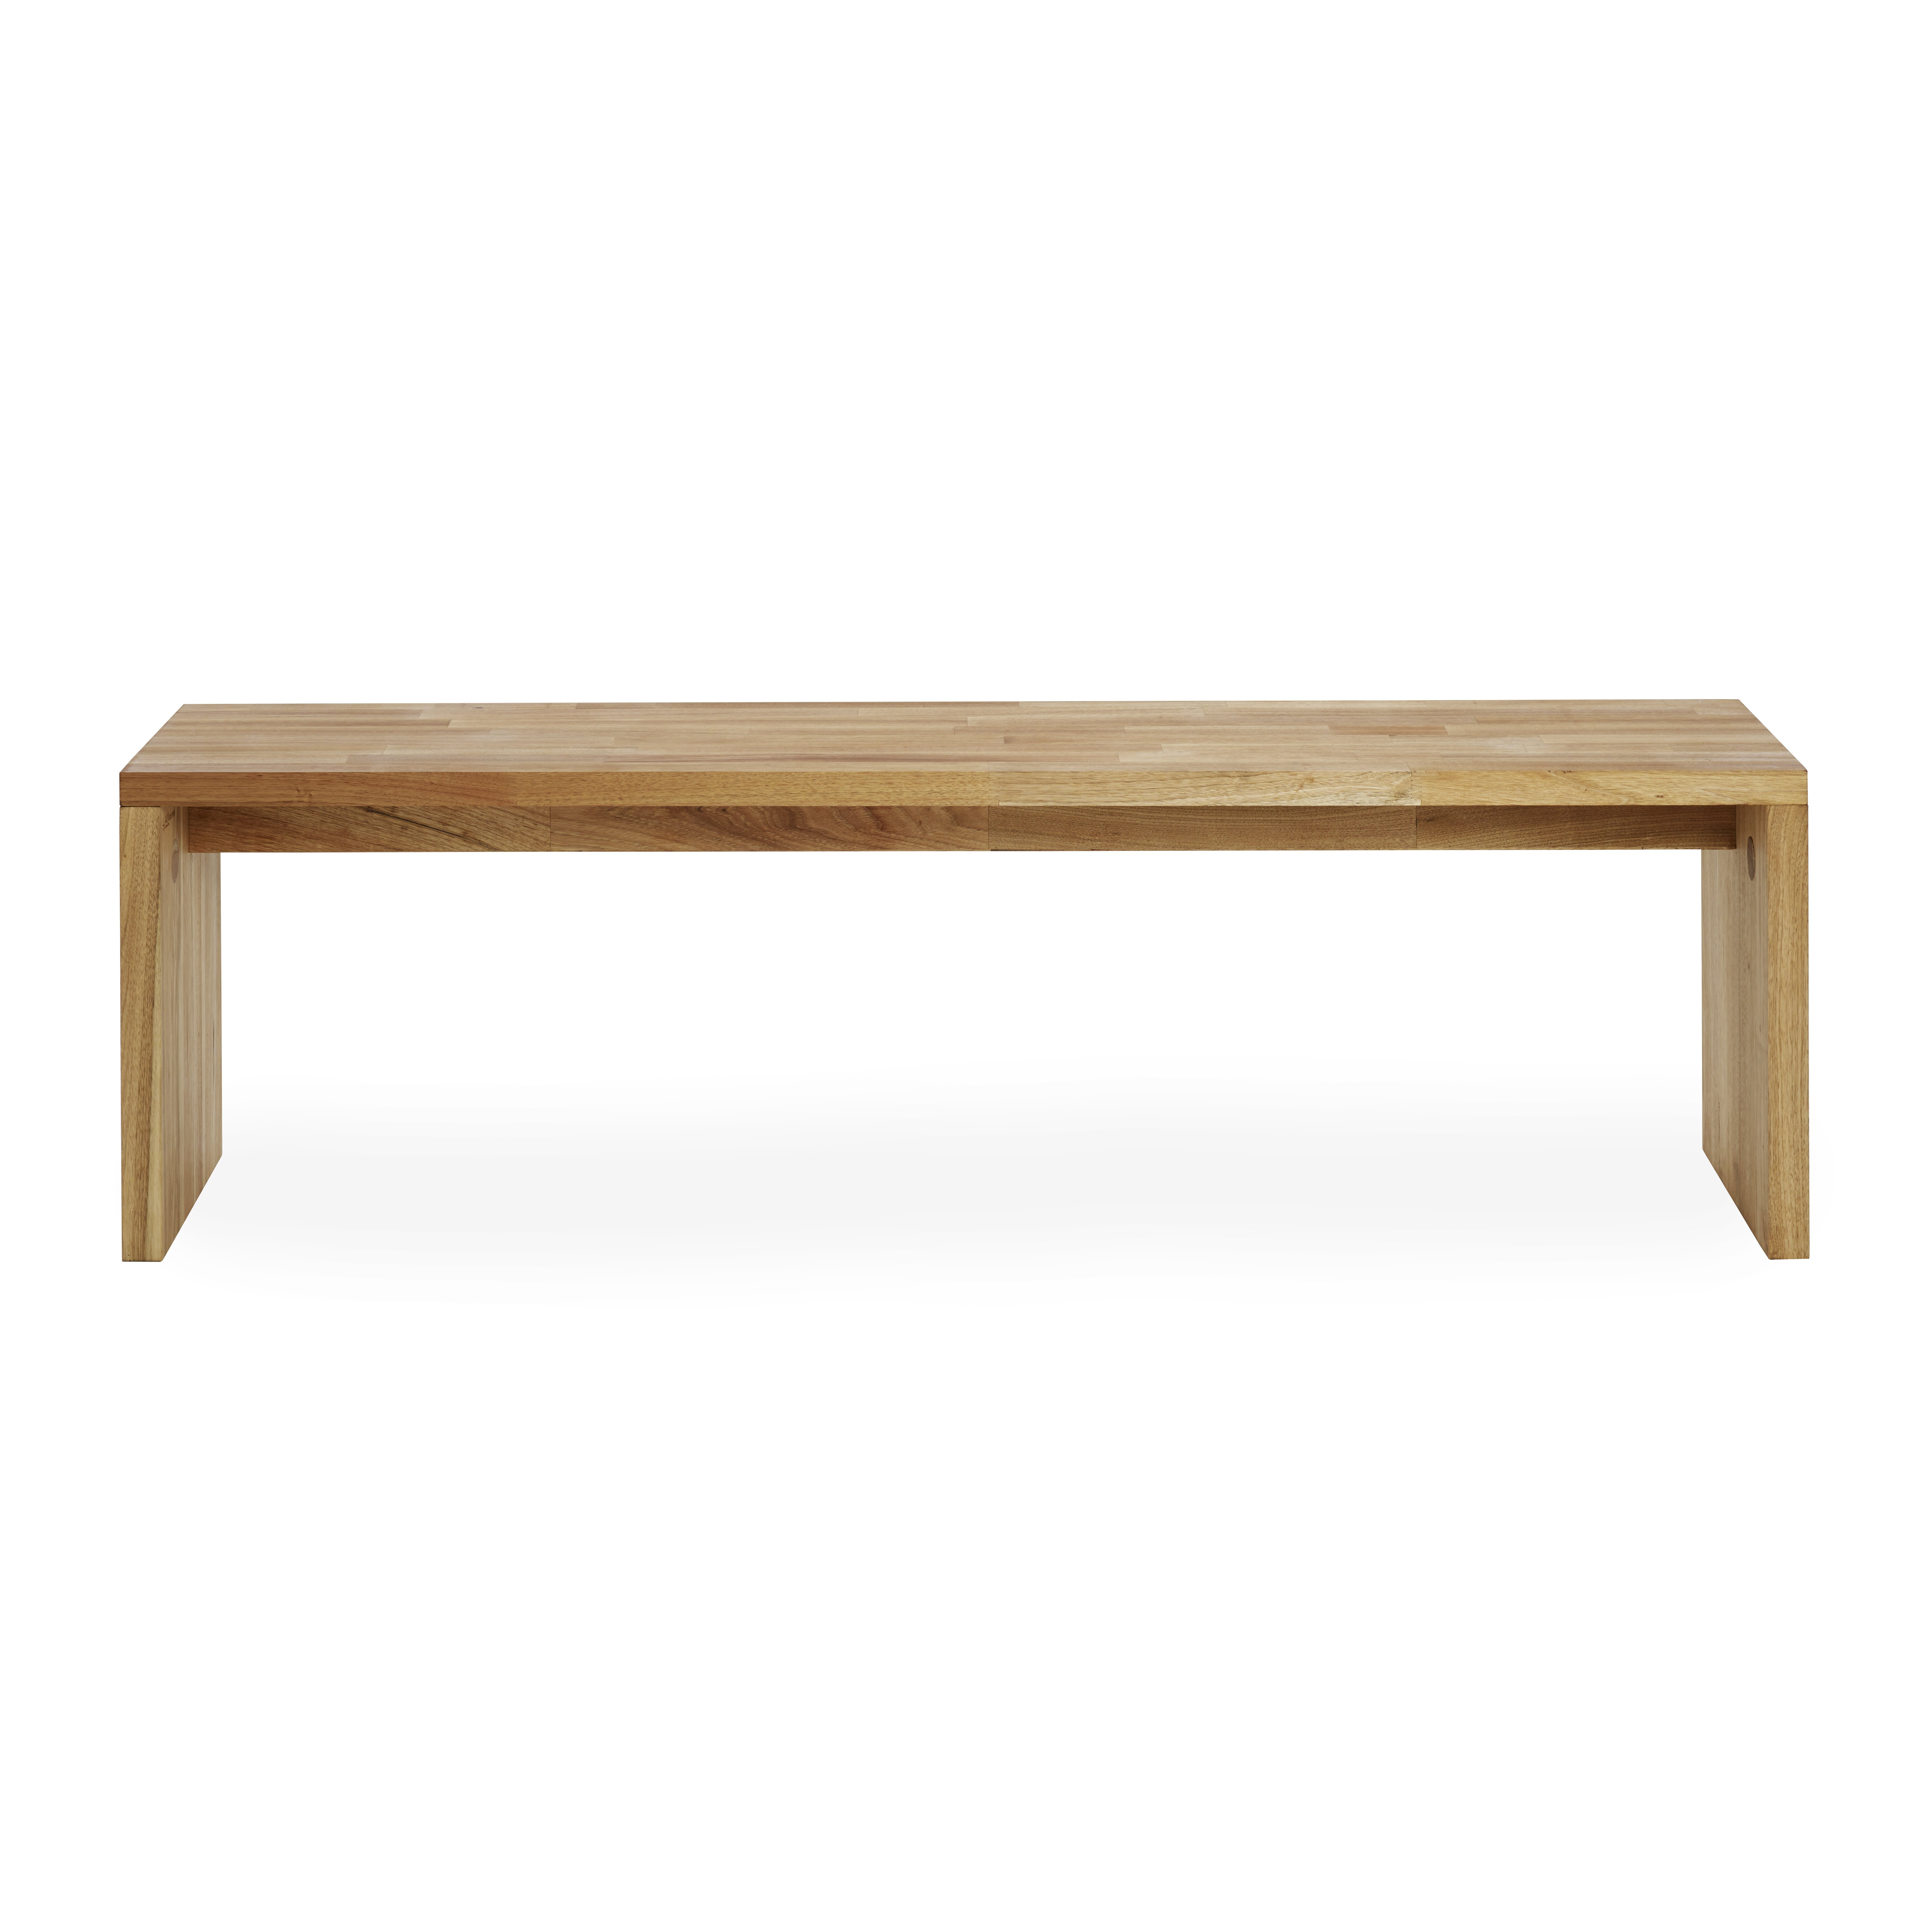 Mash Studios Lax Dining Bench Reviews Wayfair